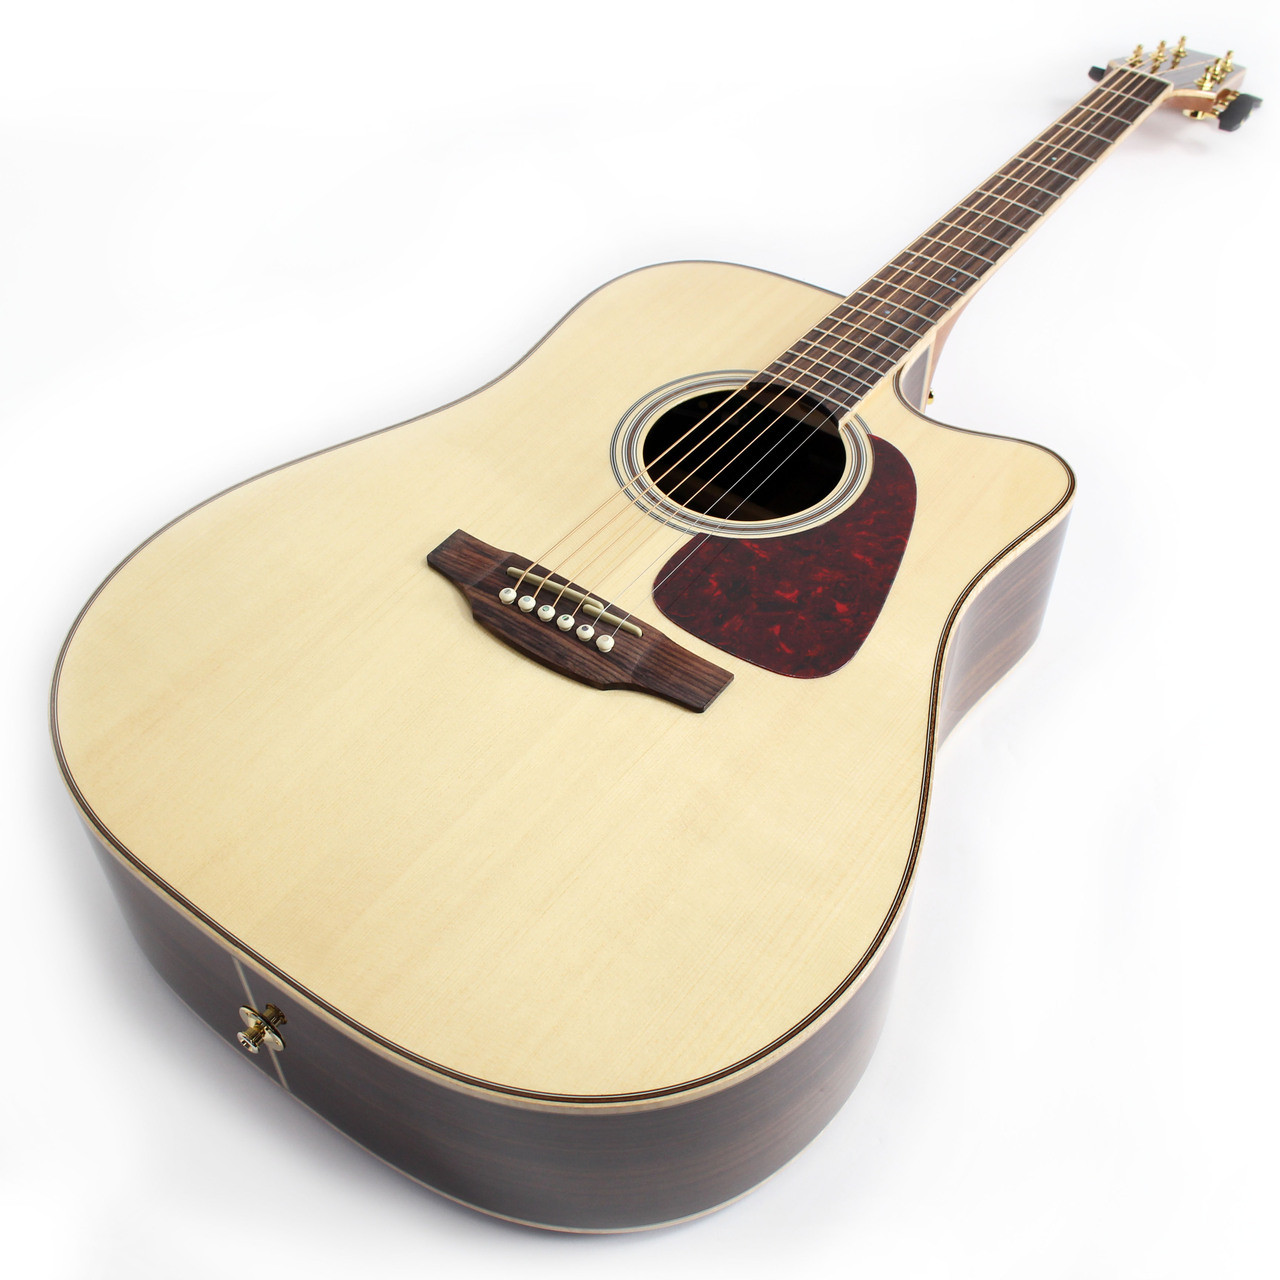 brand new takamine gd93ce dreadnought cutaway acoustic electric guitar natural ebay. Black Bedroom Furniture Sets. Home Design Ideas